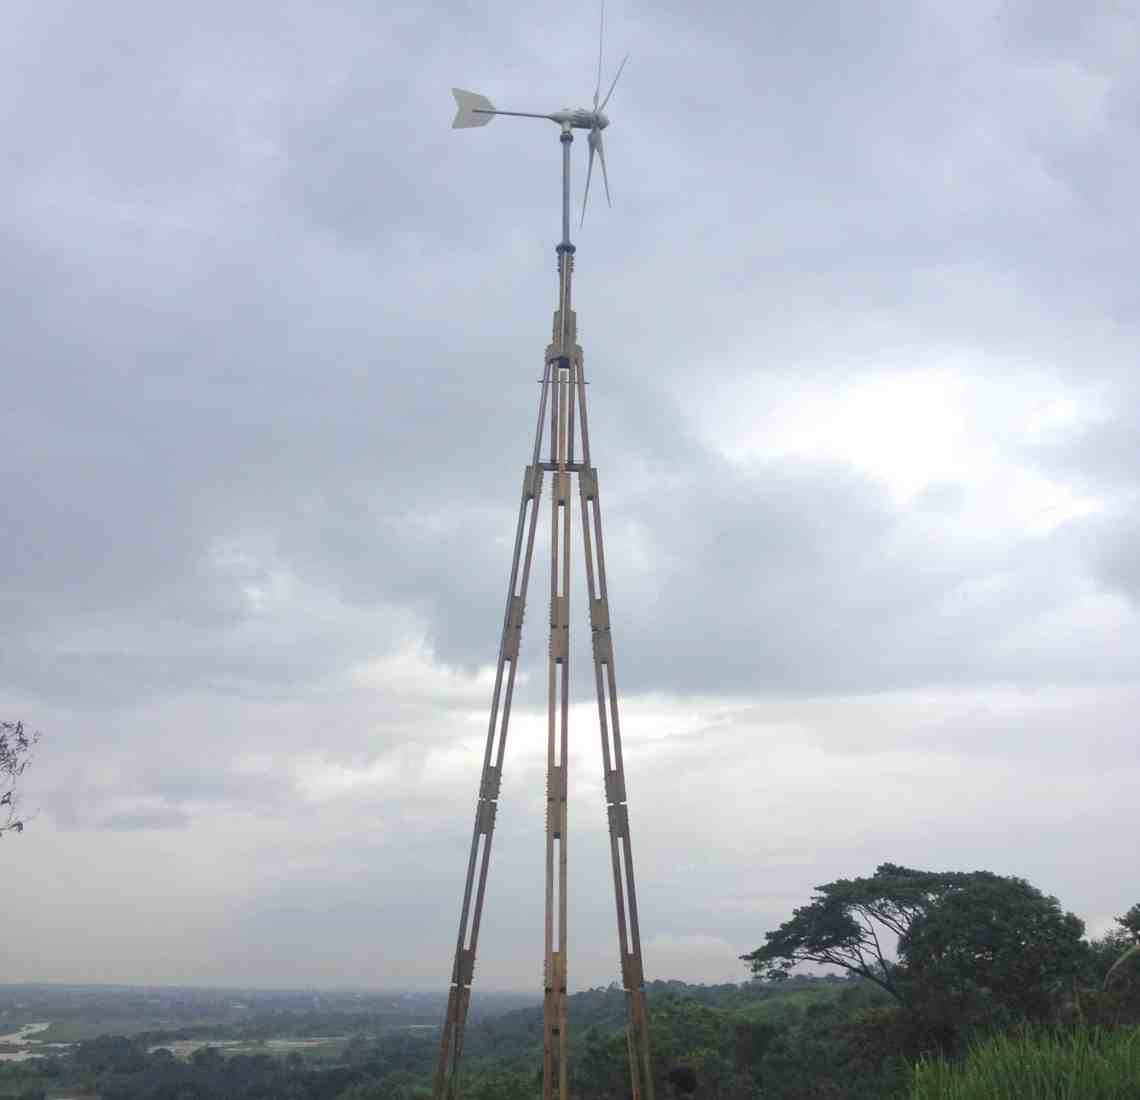 Philippines 2014: Dali PowerTower Lite installation